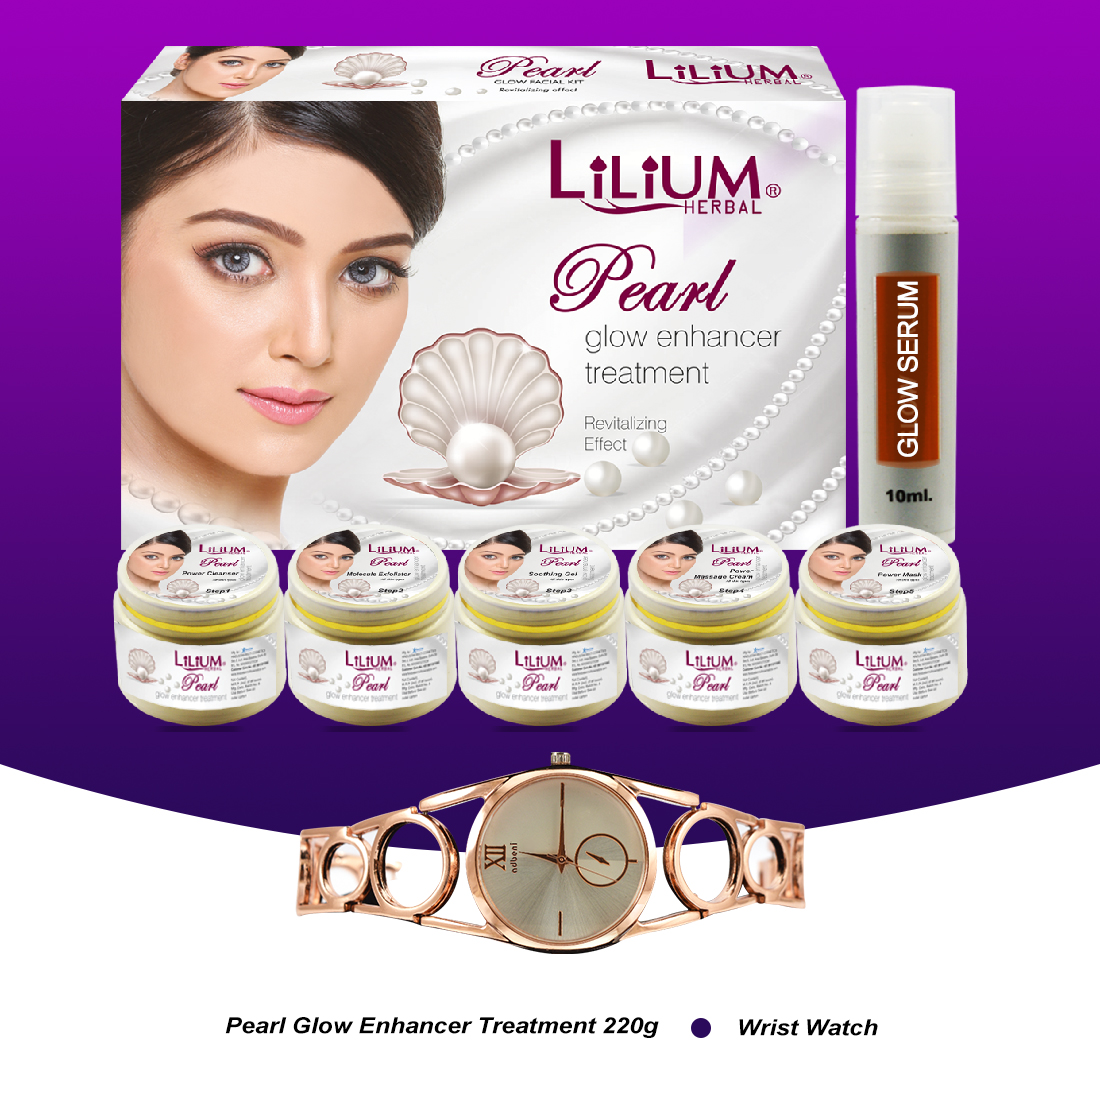 Lilium Pearl Glow Enhancer Treatment Facial Kit 220gm With Wrist Watch Pack of 2